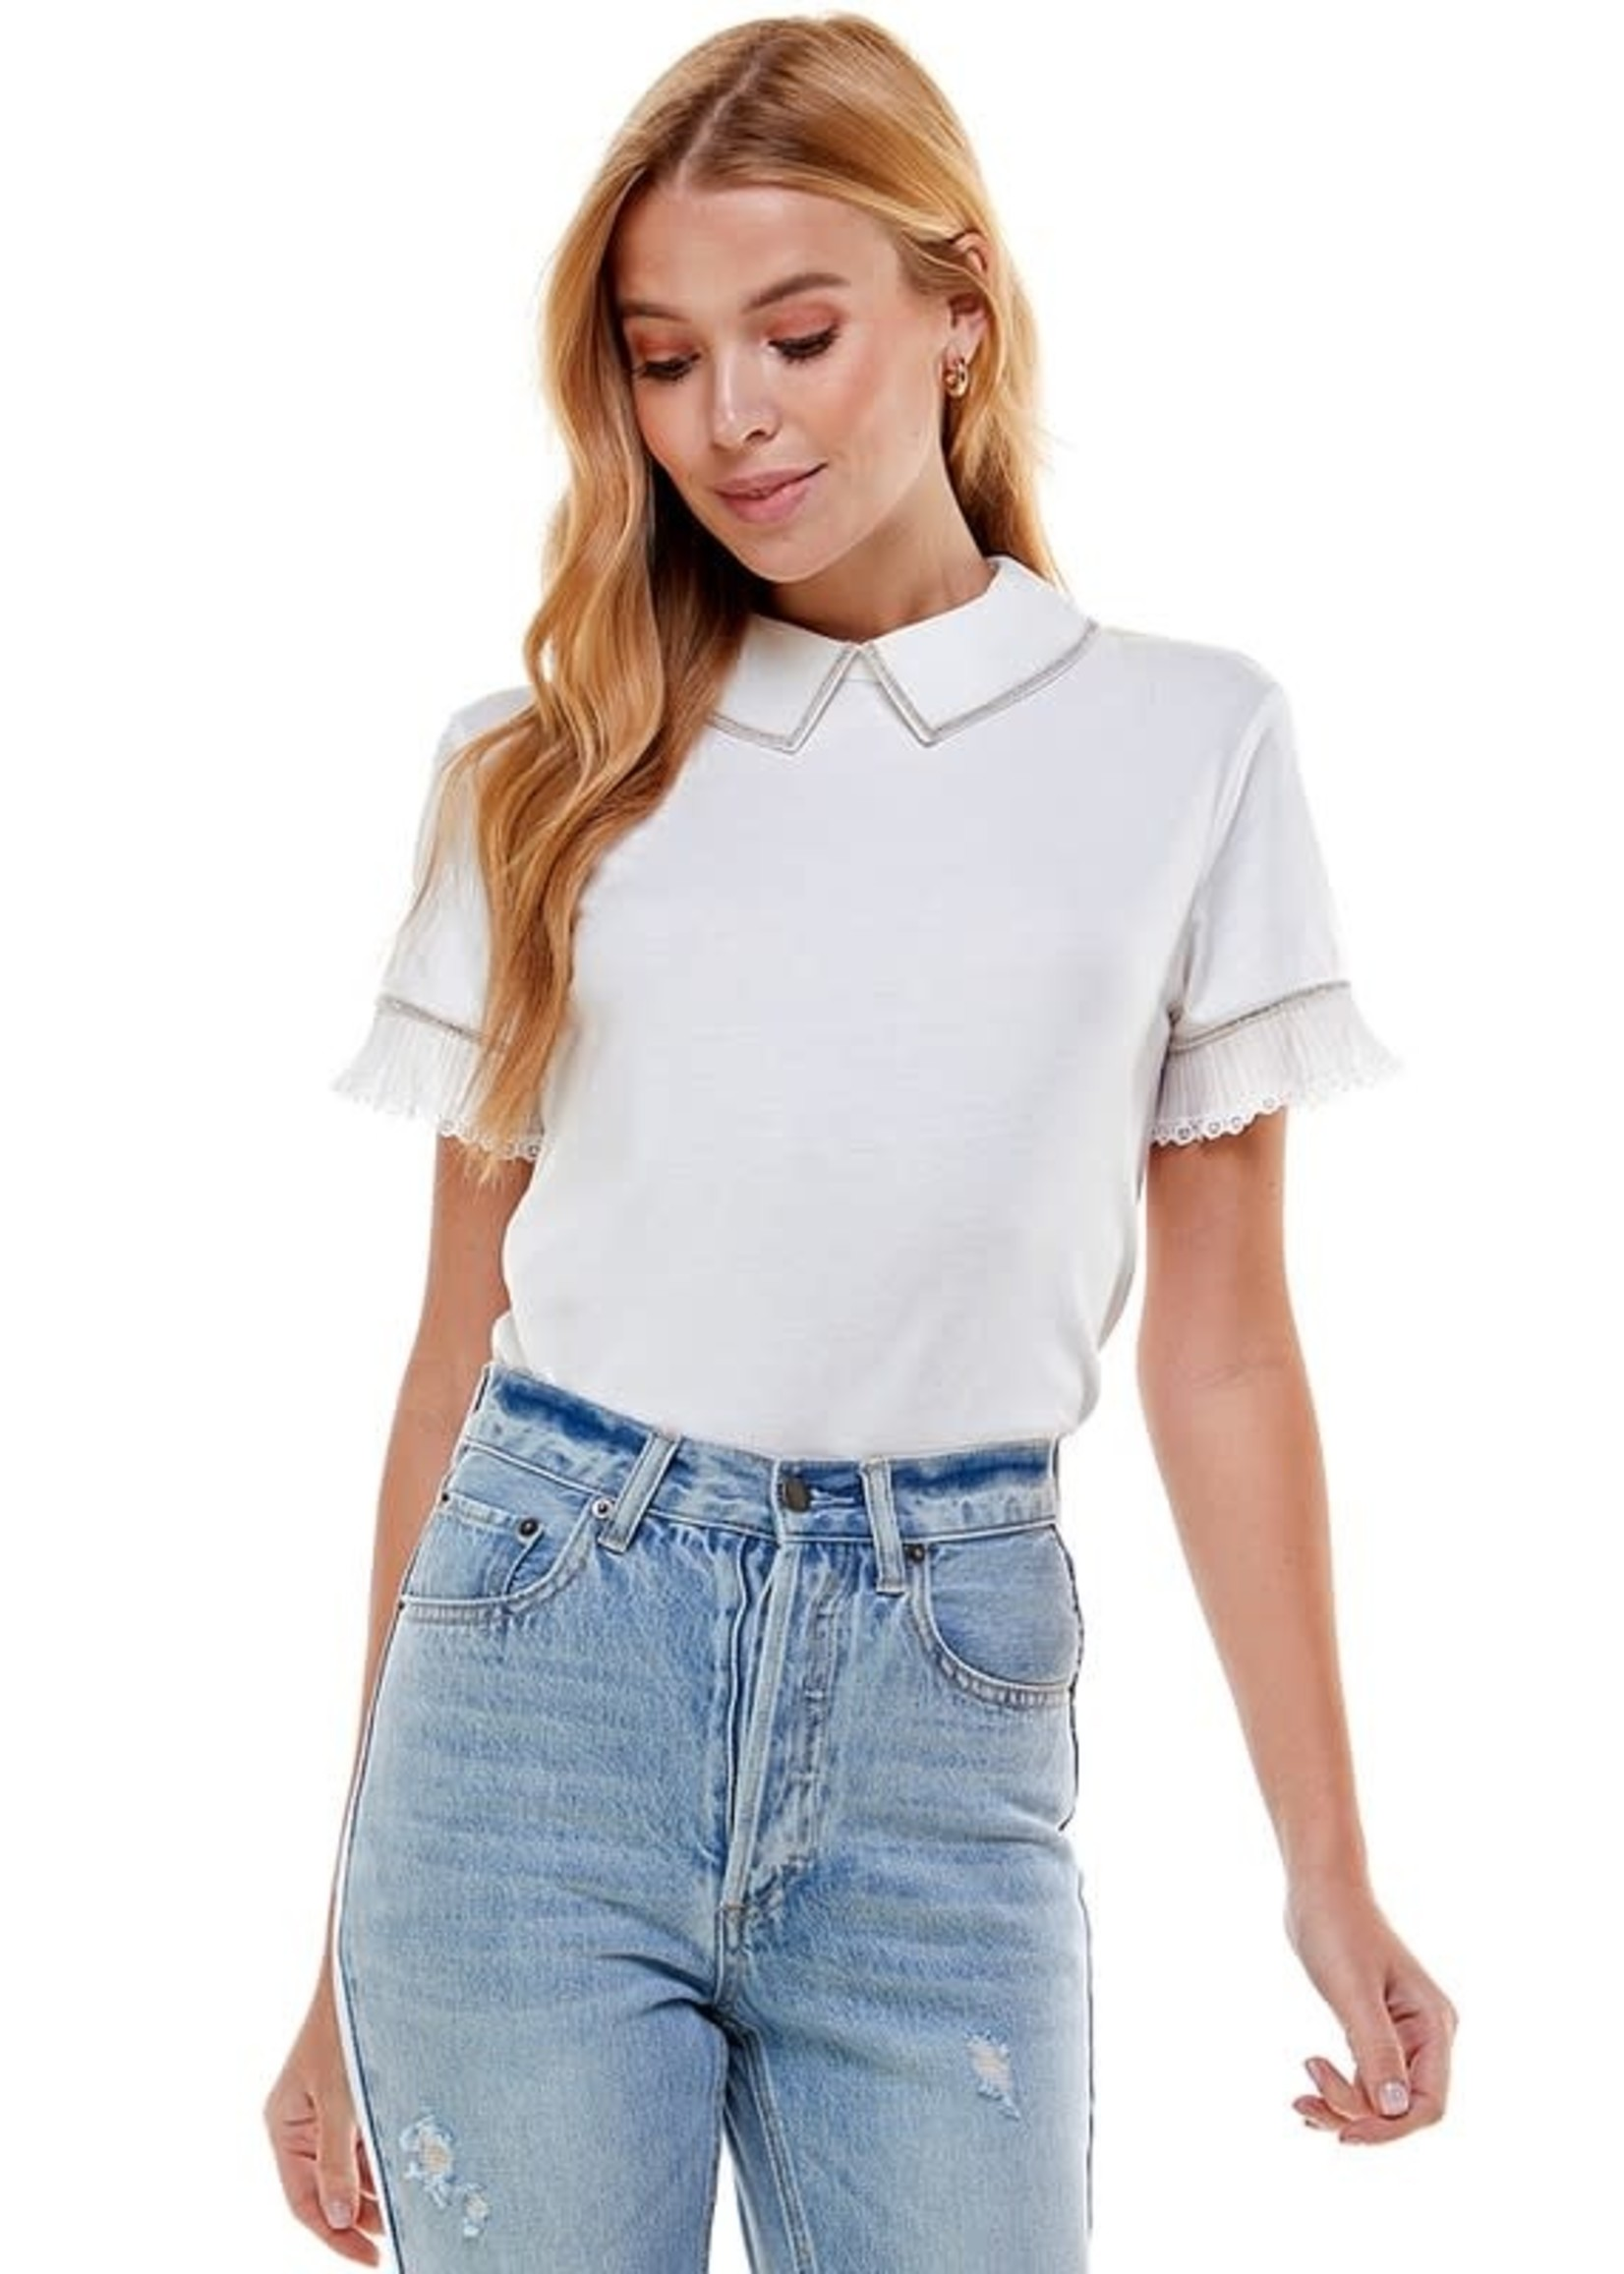 Ontwelfth Detailed Collared T-Shirt With Ruffled Sleeves -1236432